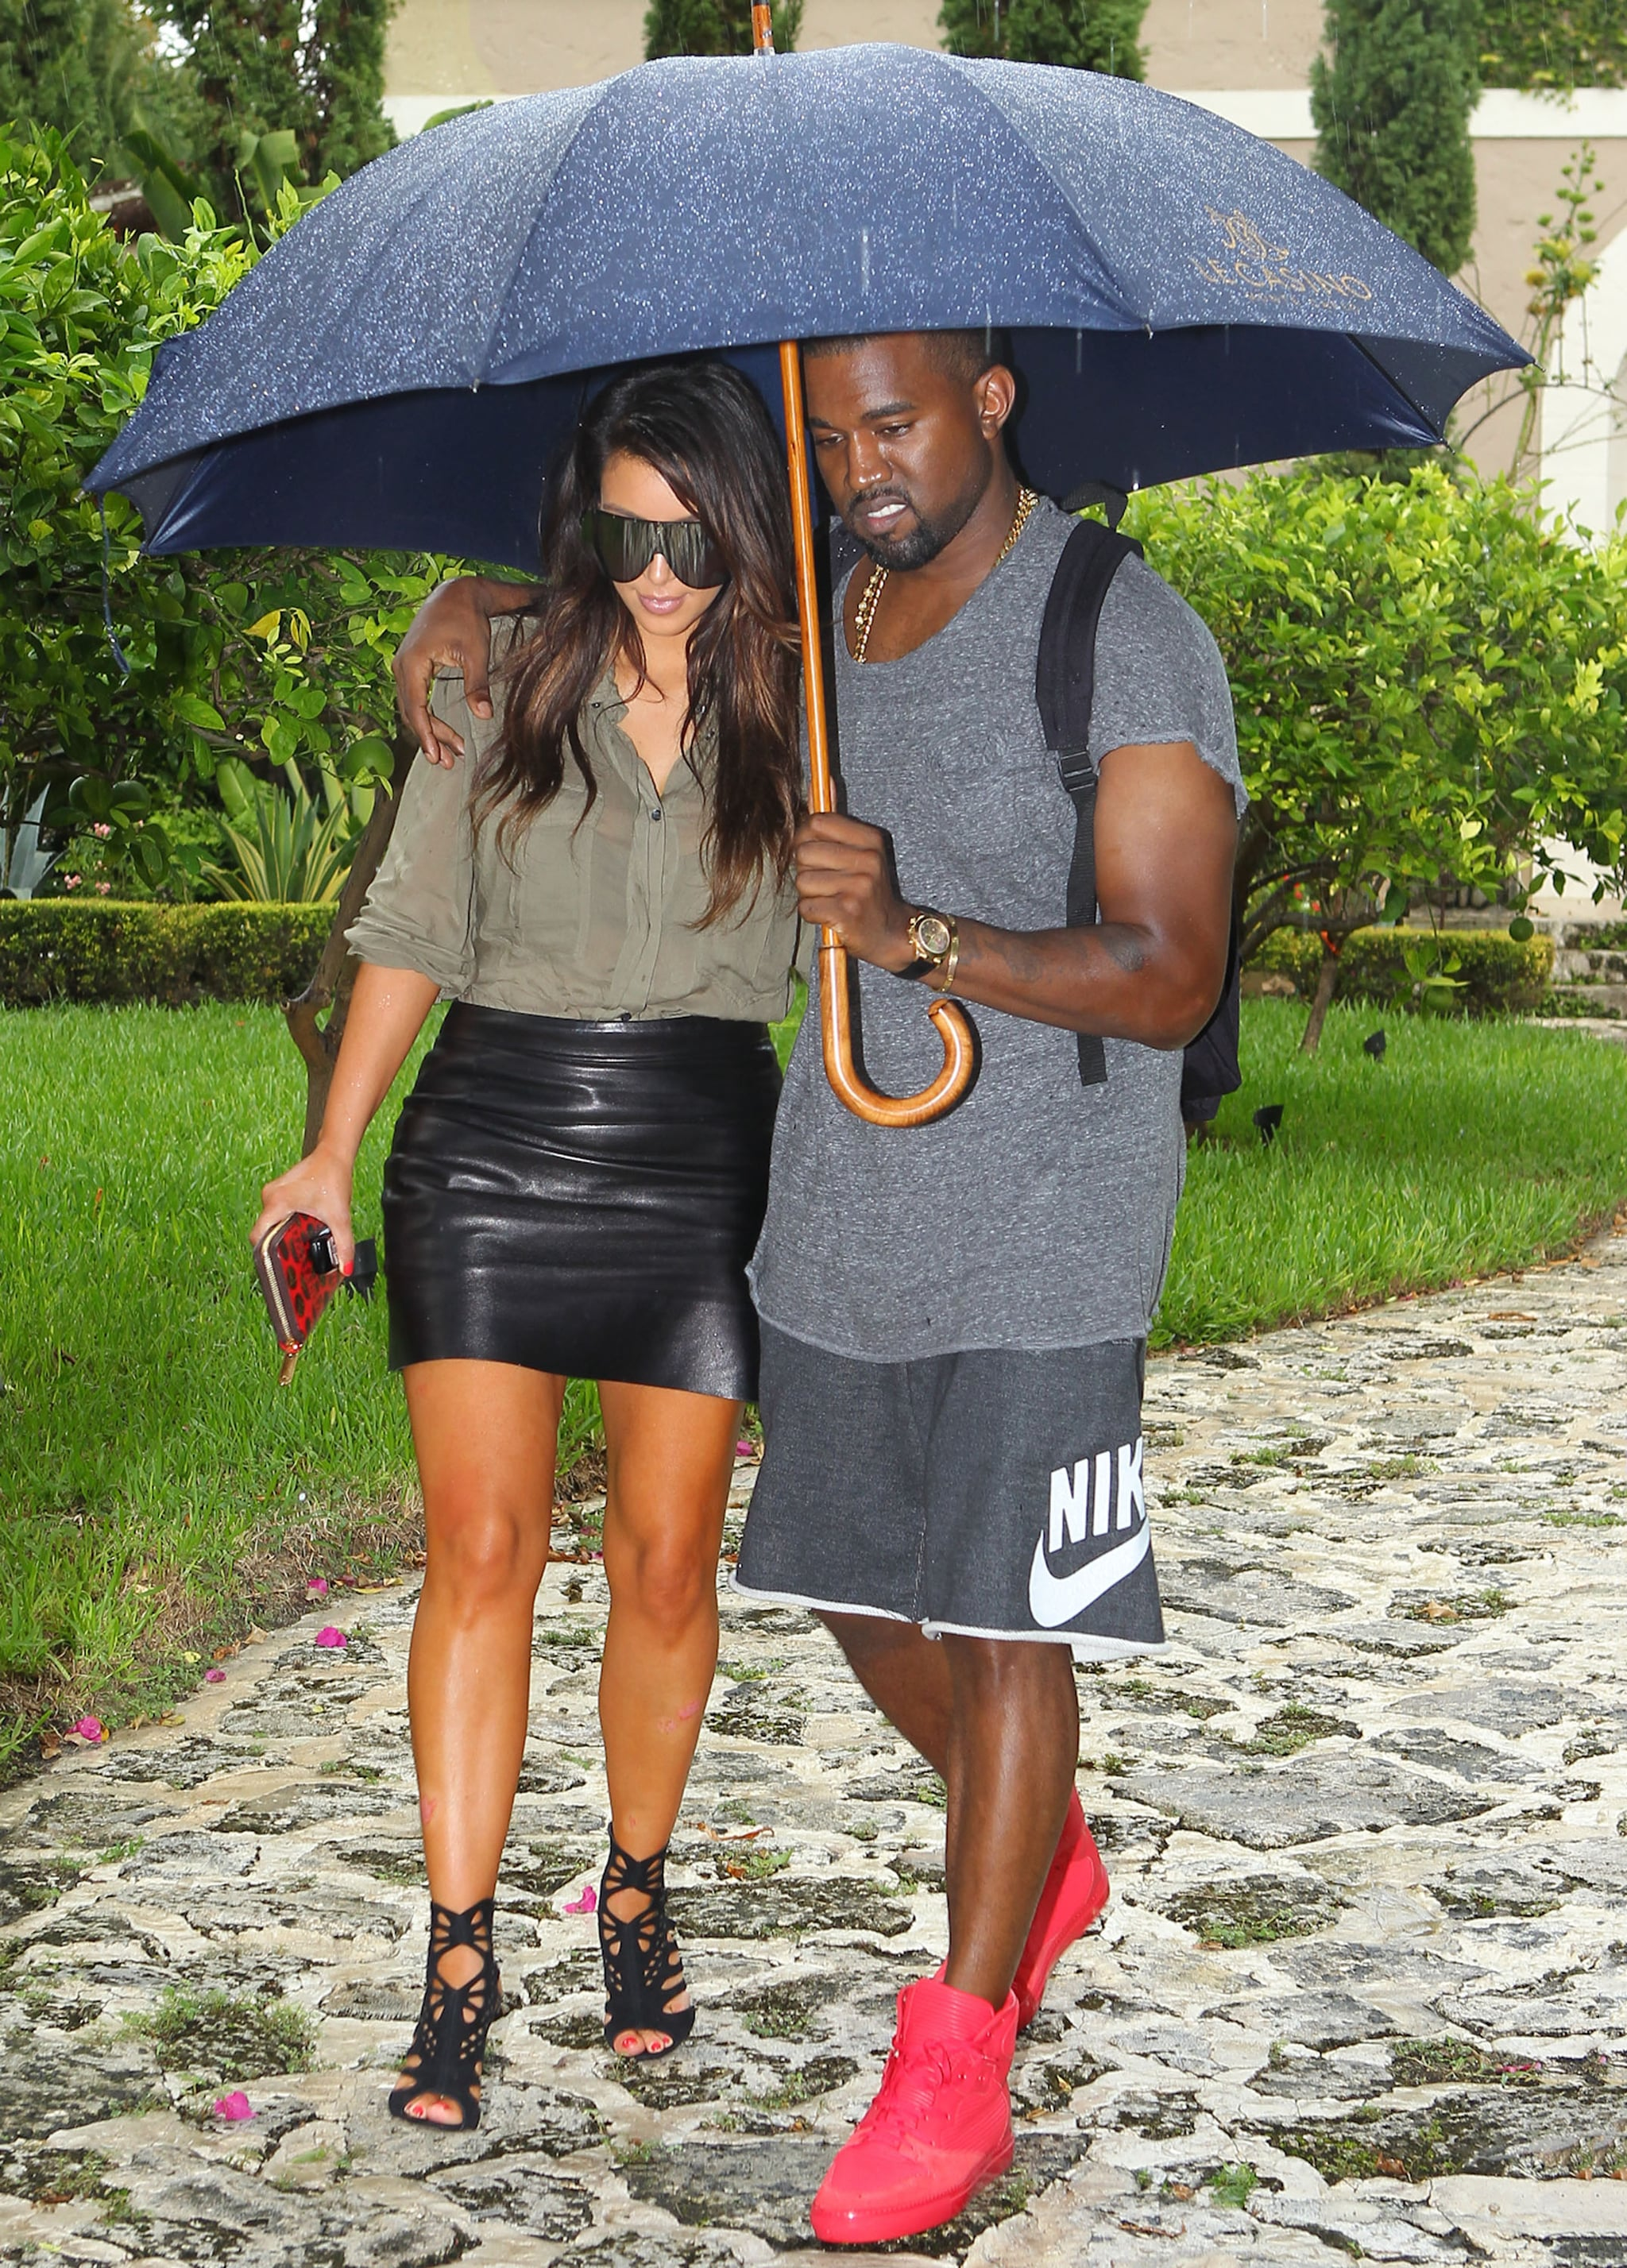 Kanye held onto Kim and an umbrella while they were out in Miami in October 2012.